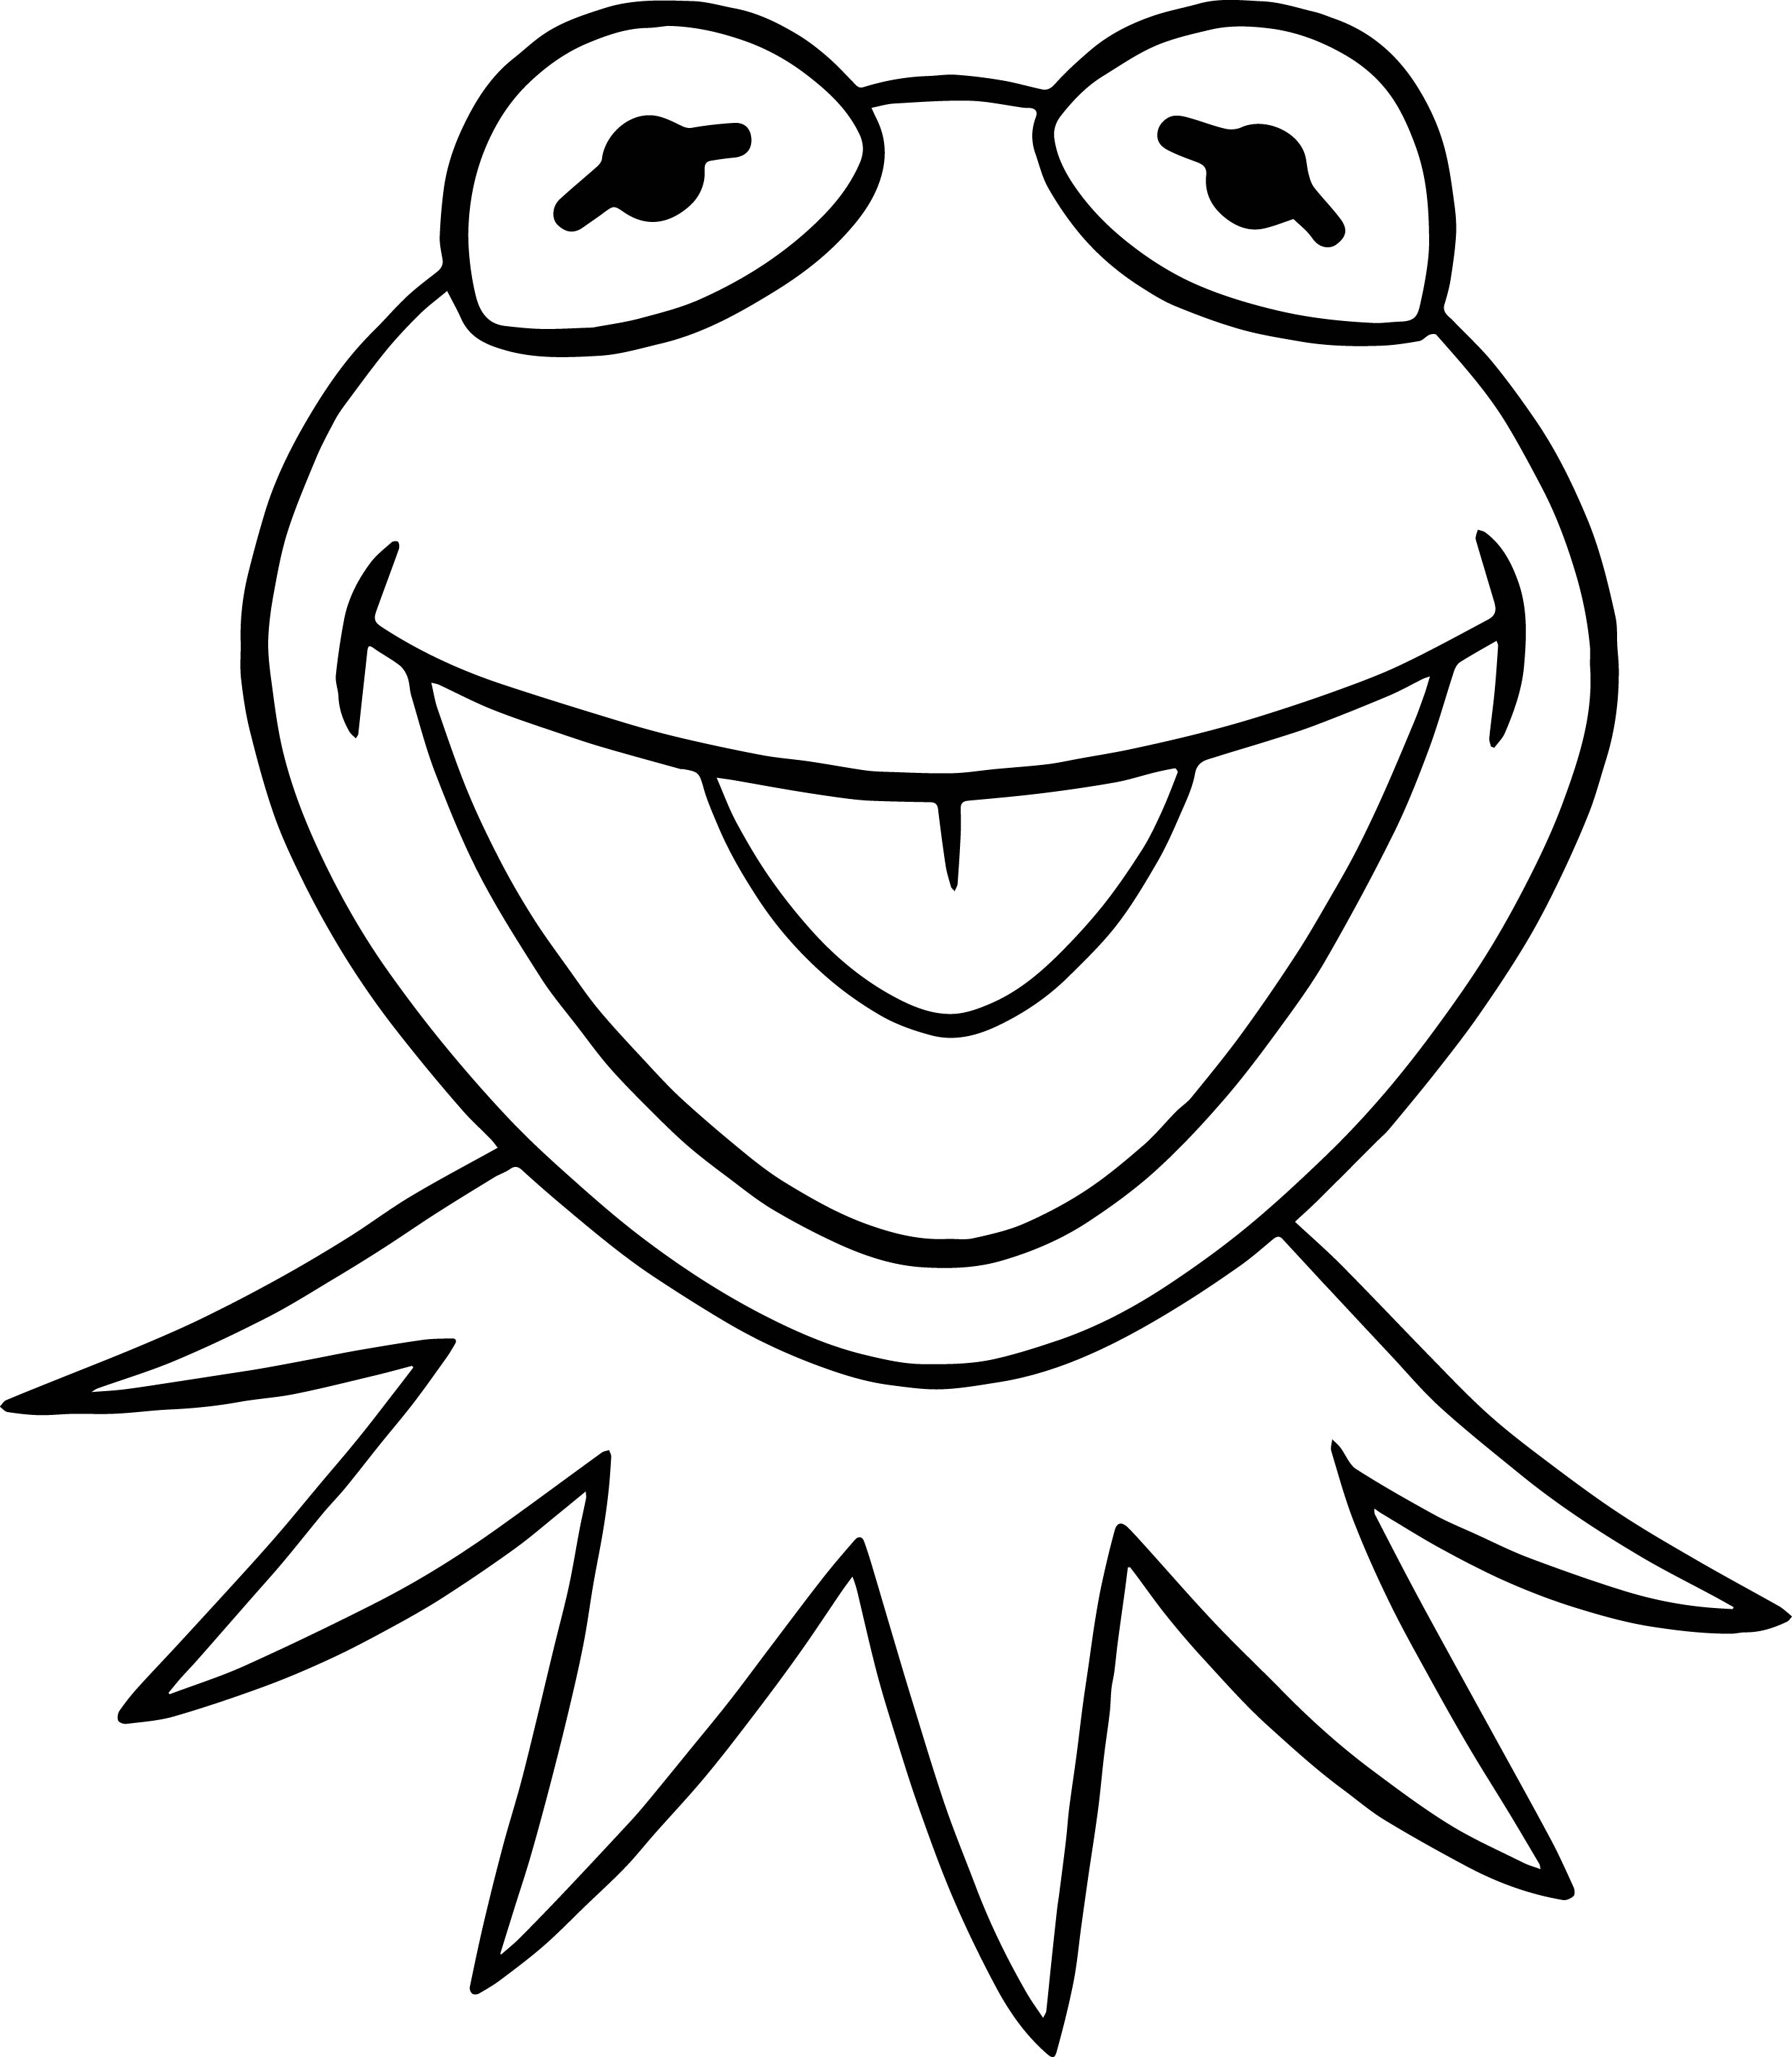 The Muppets Kermit The Happy Frog Coloring Pages | Wecoloringpage